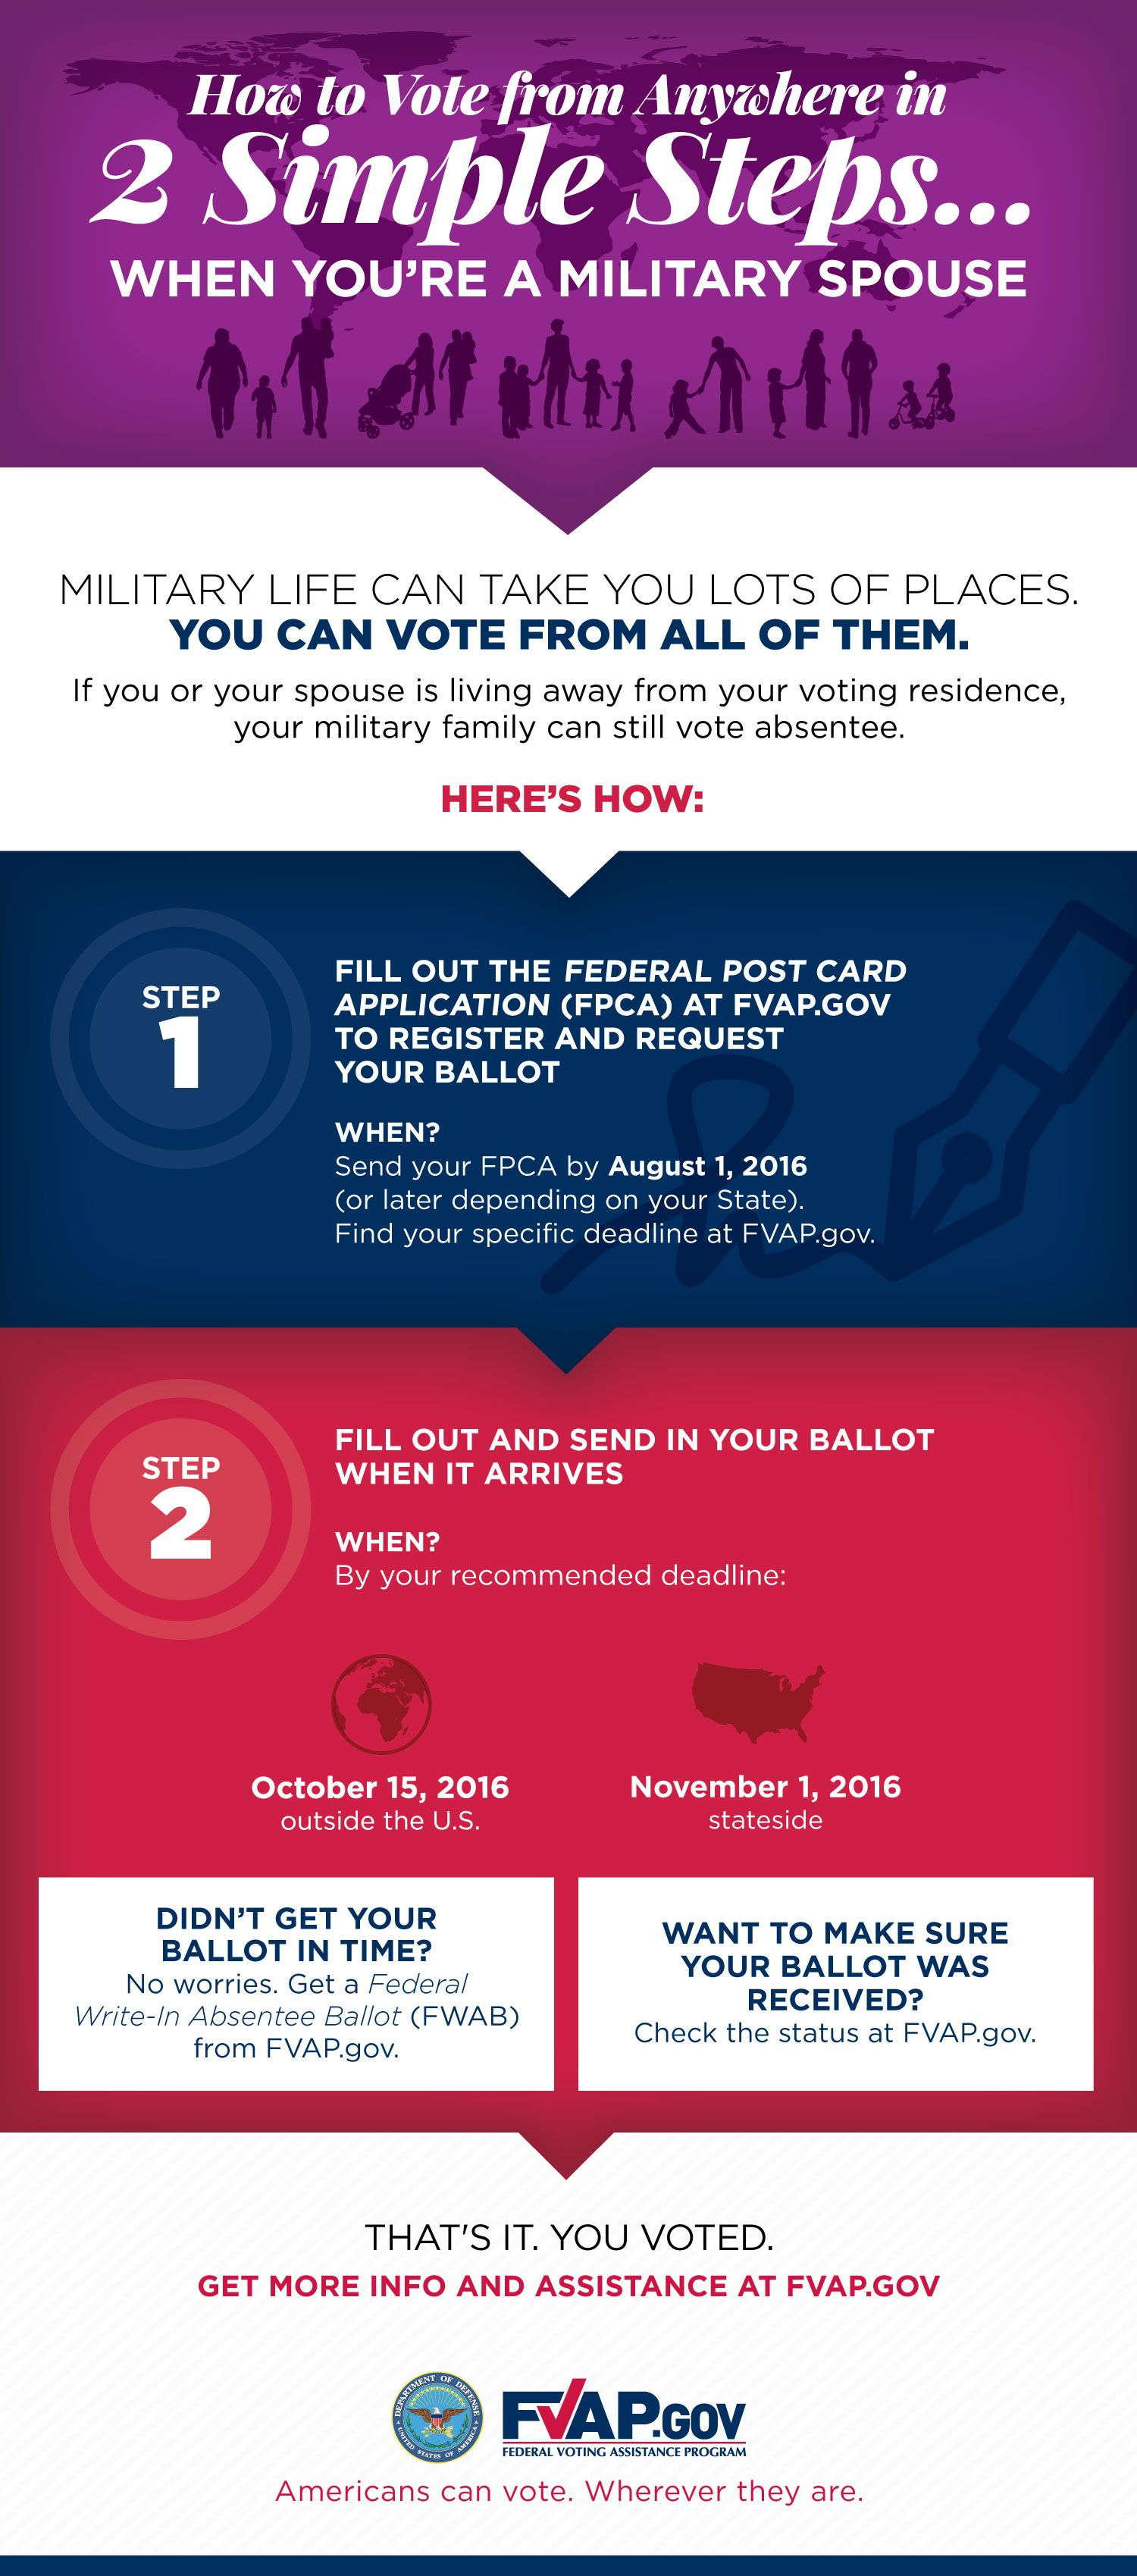 fe6f7259dfd73a0901b49ee39503c43a - How Long Does It Take To Get A Mail In Ballot